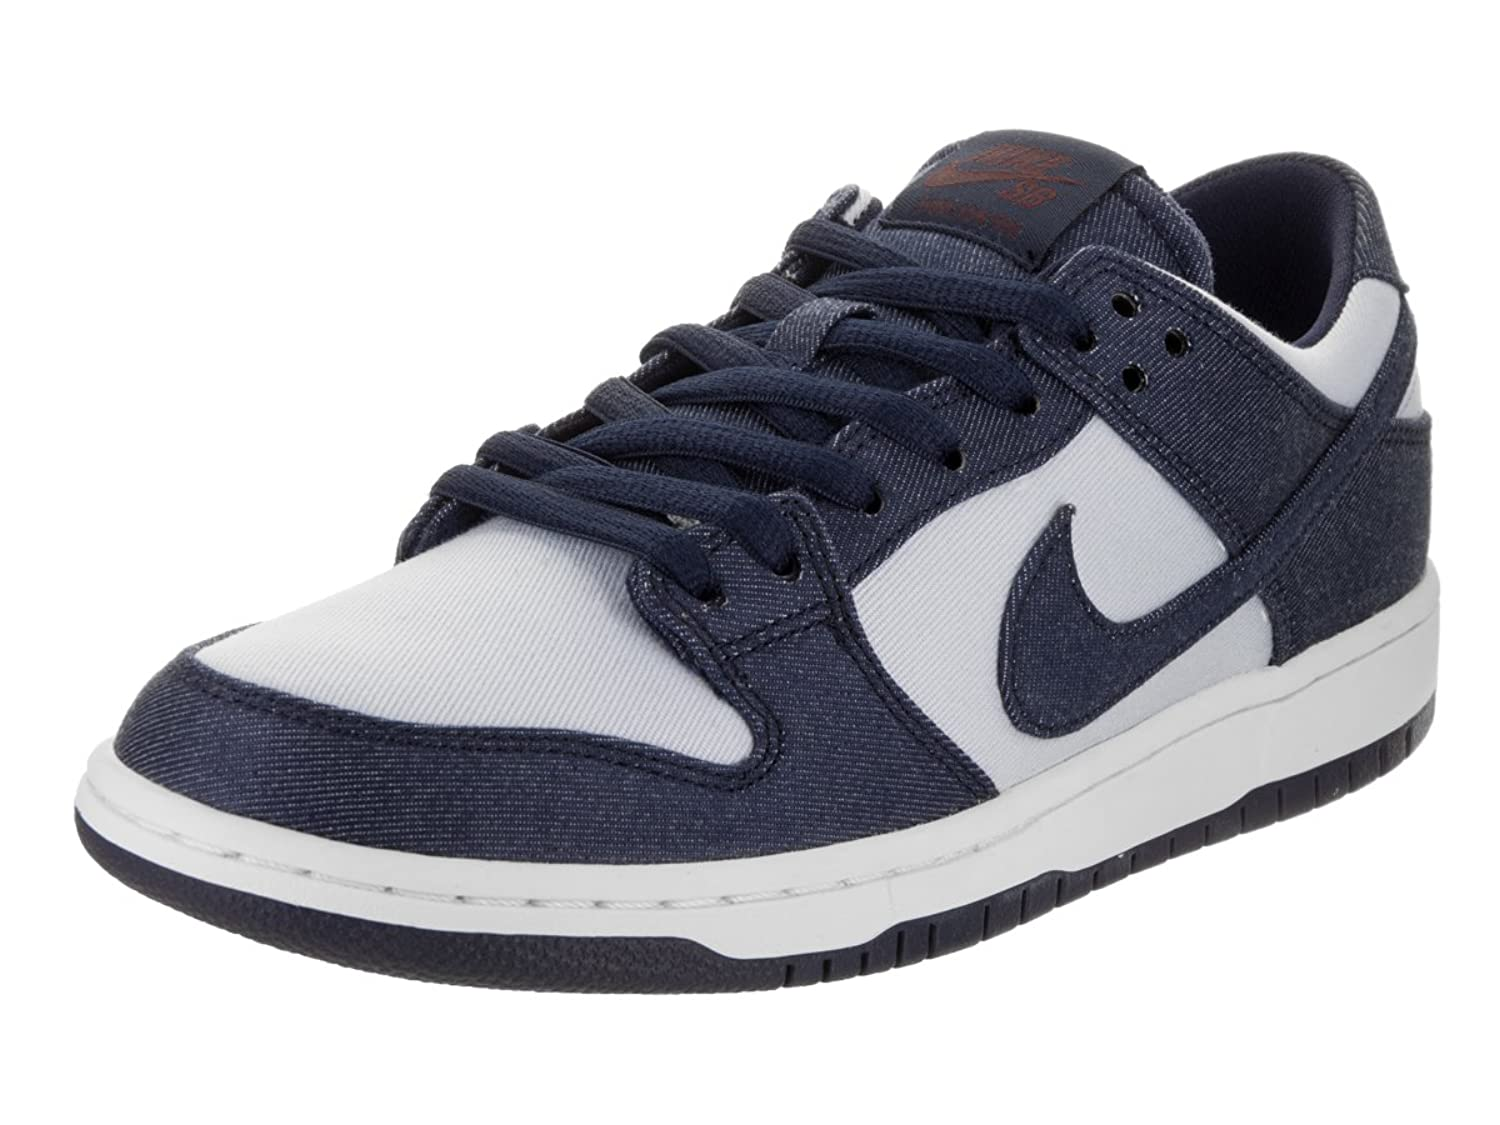 NIKE - ナイキ - NIKE SB ZOOM DUNK LOW PRO 'BINARY BLUE' - 854866-444 (メンズ) B004H5IRKE 6